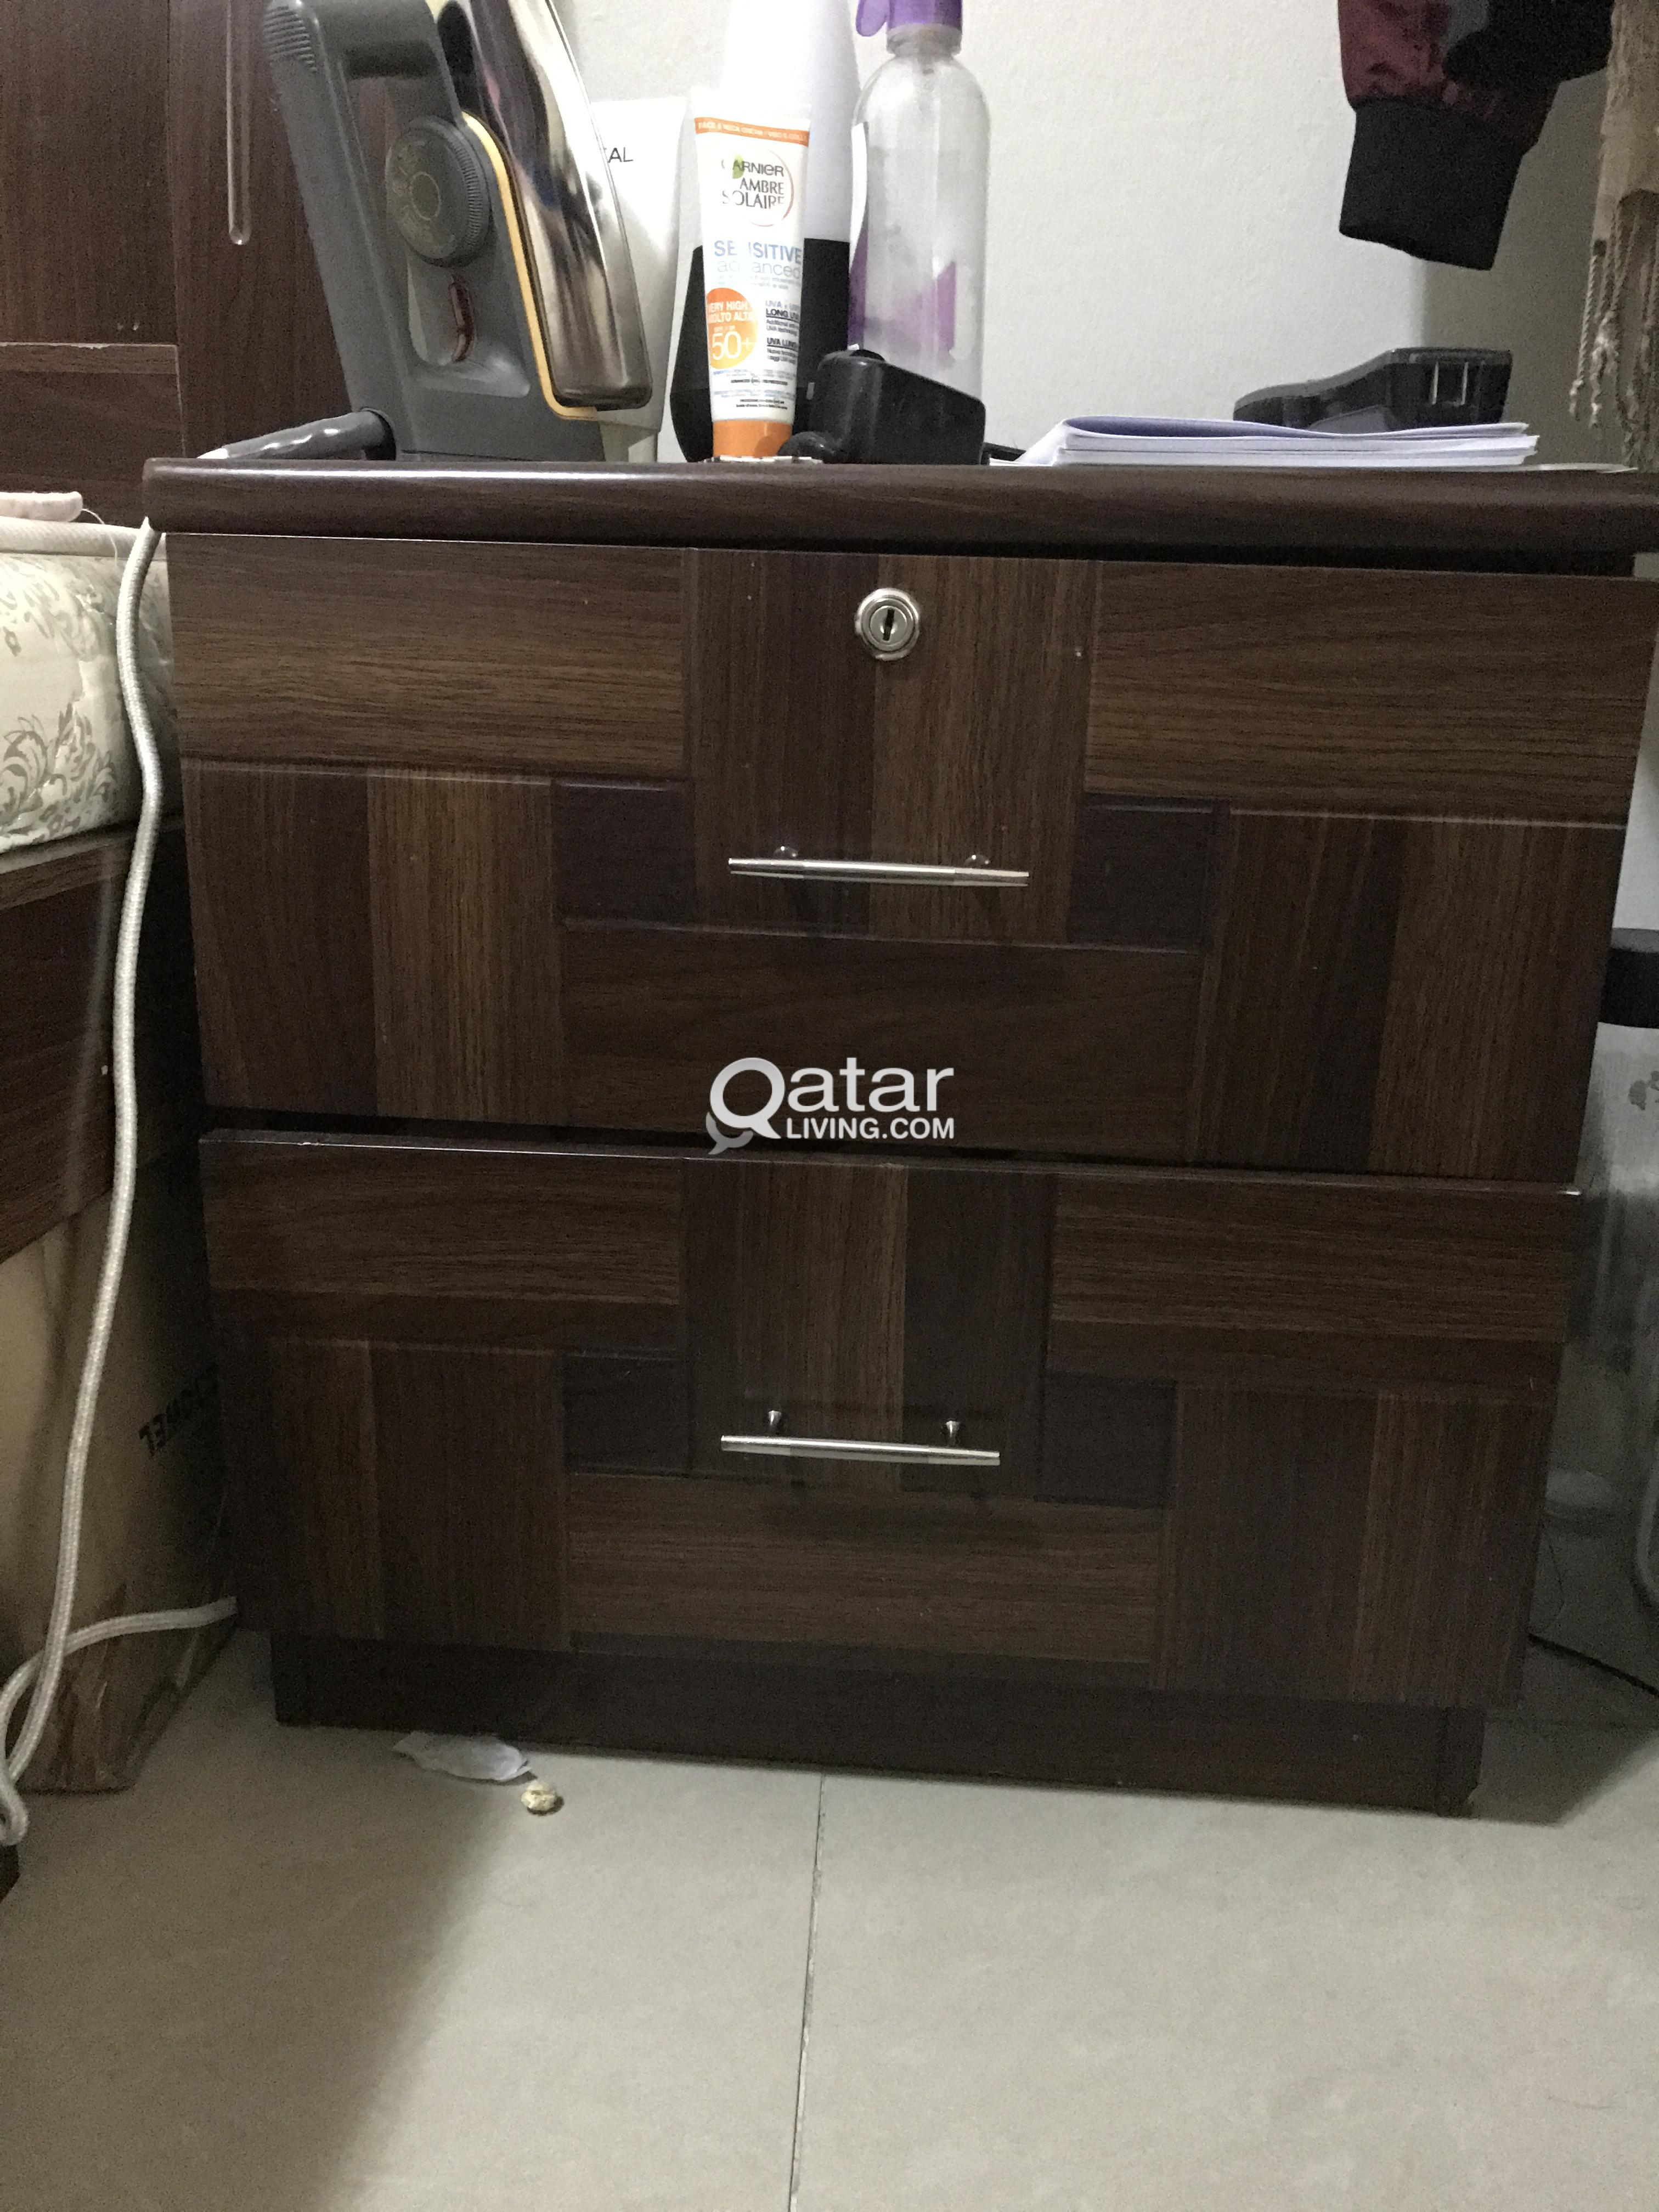 collection furniture for made set italy bedroom florida esf european p master sale esfmangano in sets luxury quality jacksonville